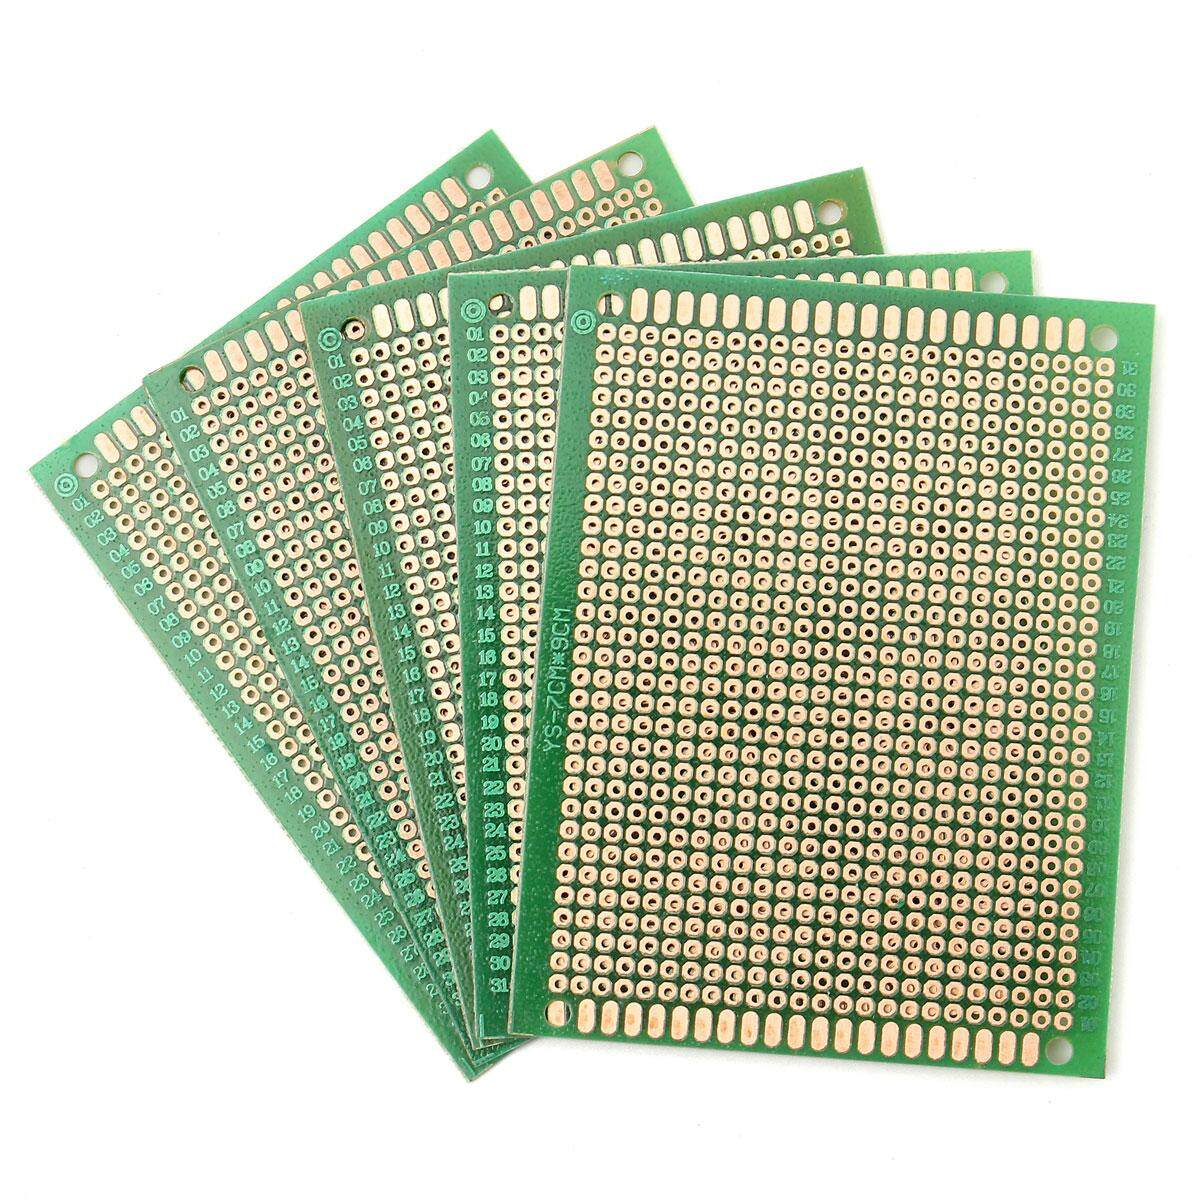 Features 10pcs 4x6cm Double Side Prototype Pcb Universal Printed Paper Circuit Board 5pcs Diy Soldering Copper 70mm X 90mm